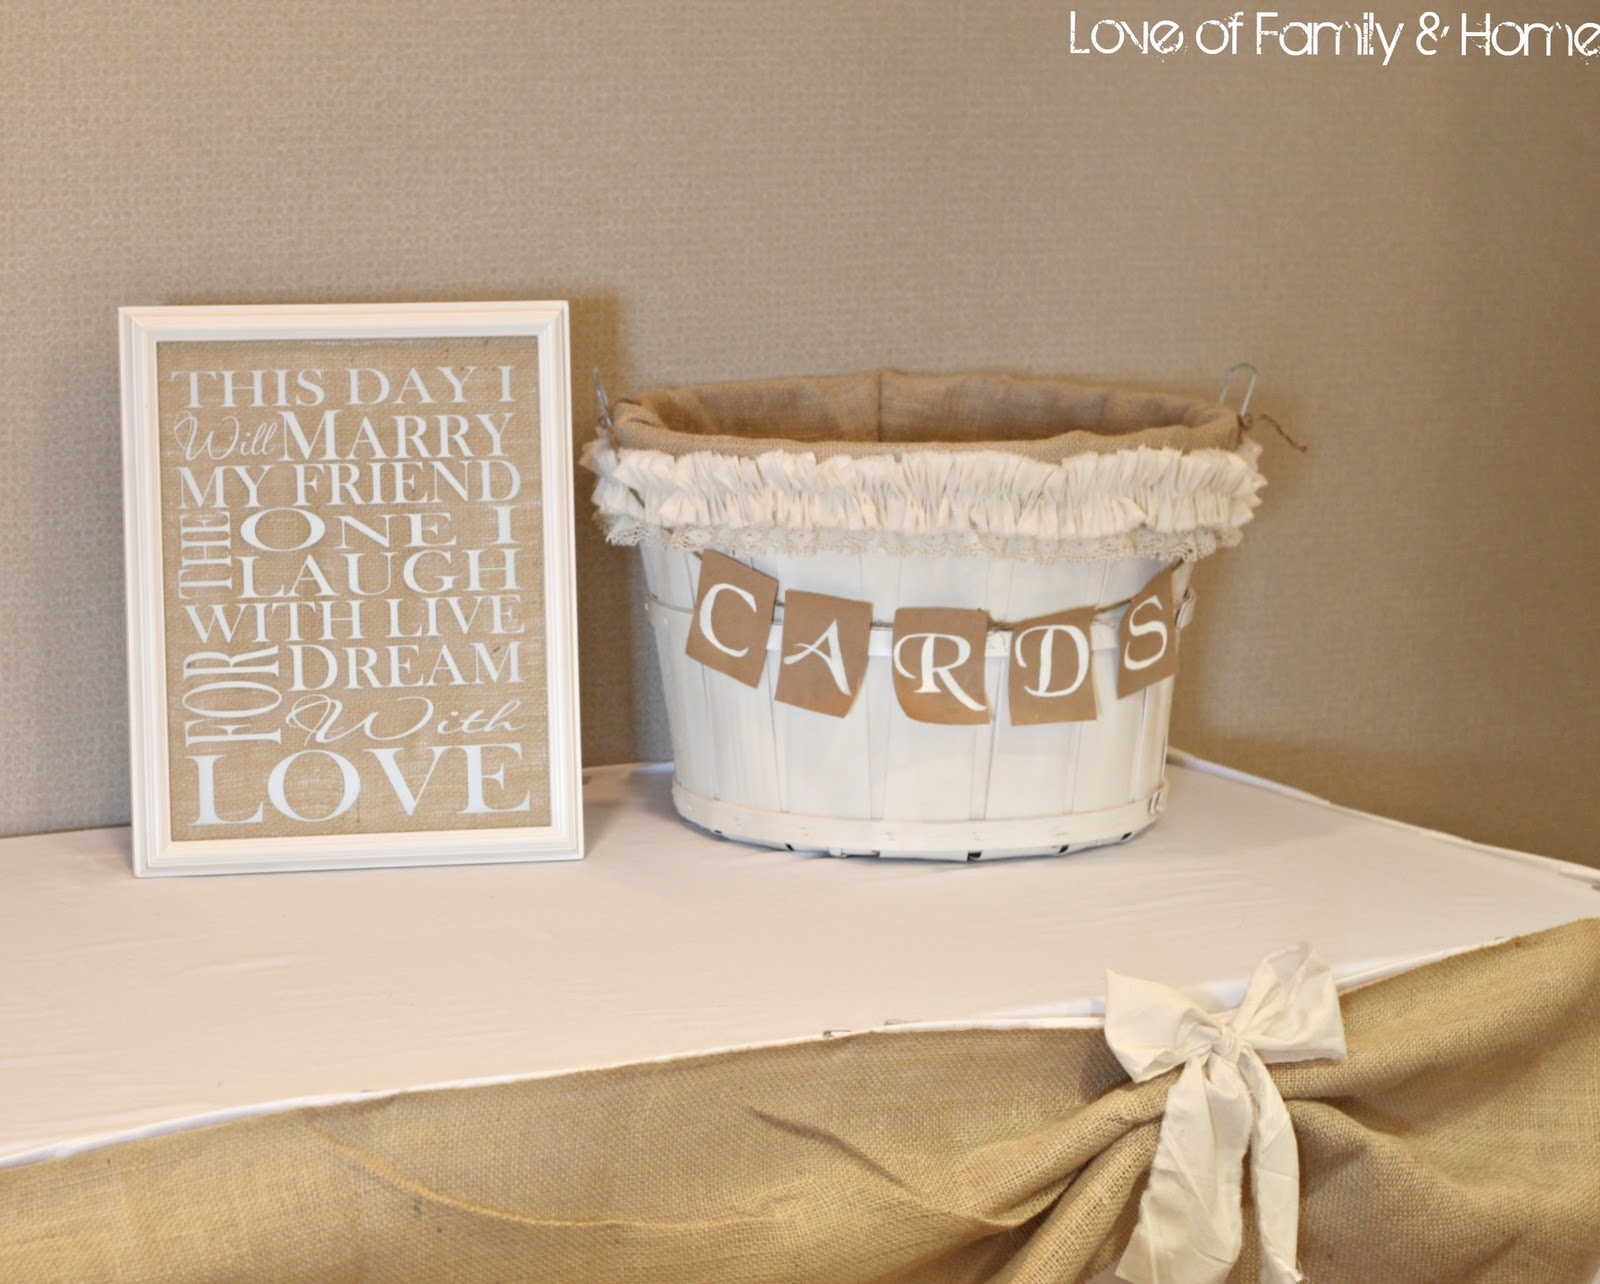 Diy wedding slipcovers archives love of family home negle Gallery